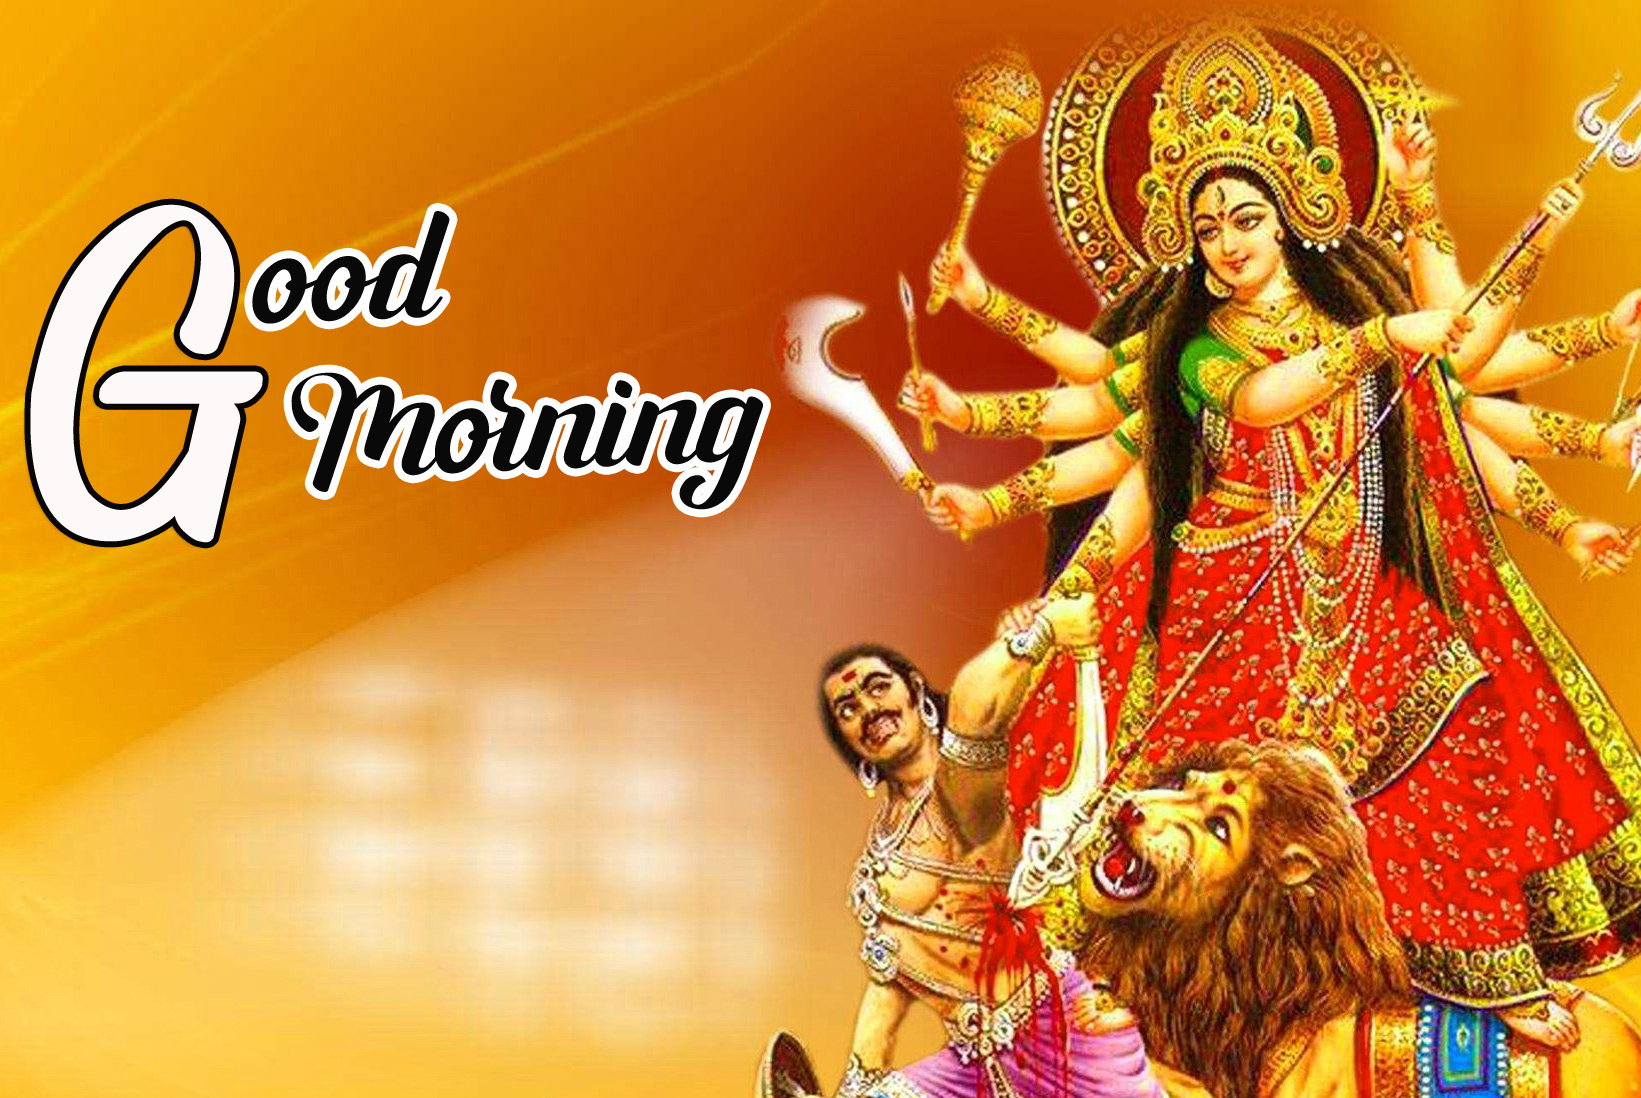 Best Sweet 1080p Good Morning Images Pics Wallpaper With Maa Durga